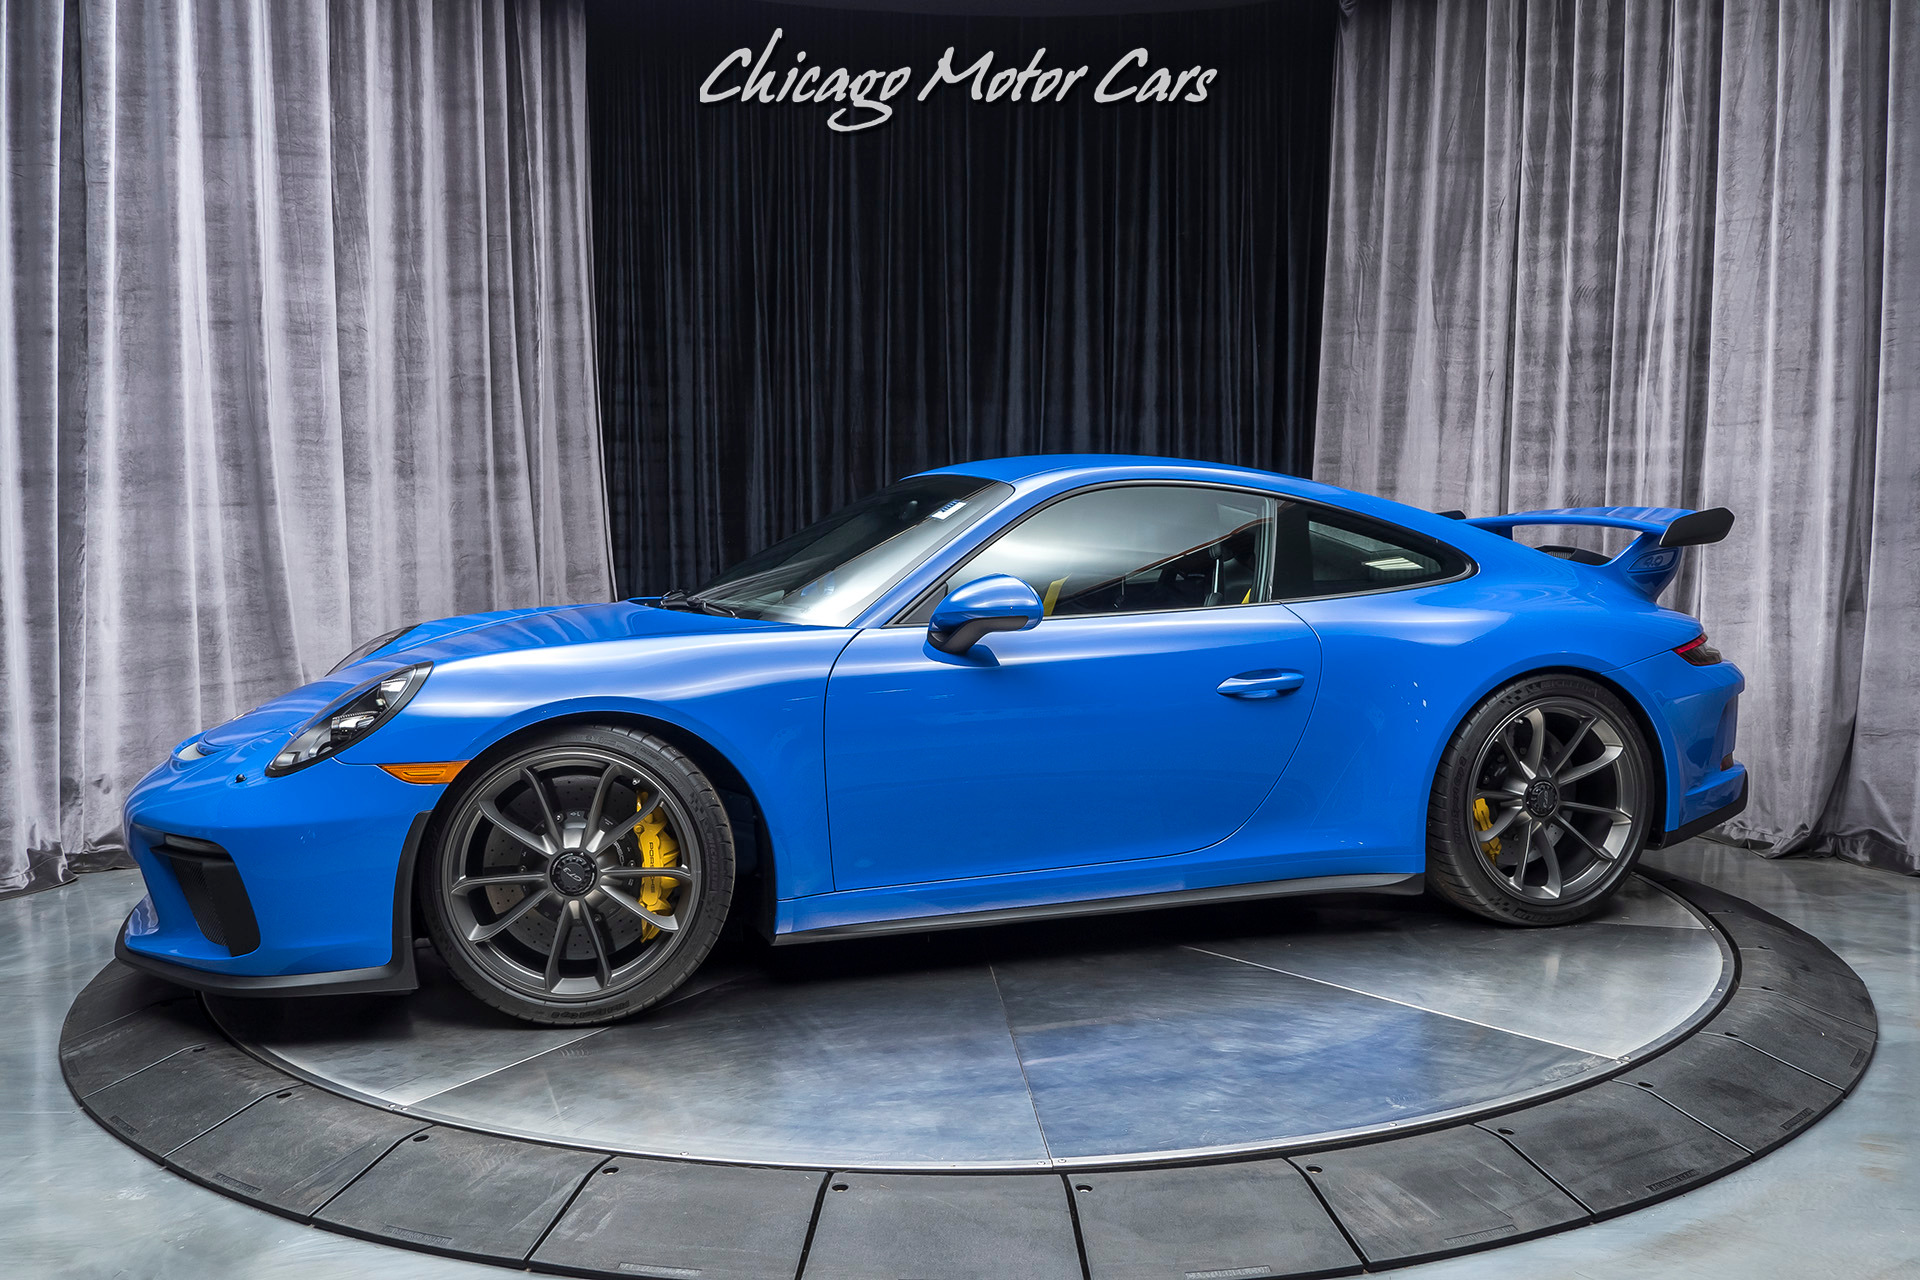 Used 2018 Porsche 911 Gt3 Coupe 6 Speed Manual Msrp 192 640 Rare Pts Maritime Blue For Sale Special Pricing Chicago Motor Cars Stock 16726